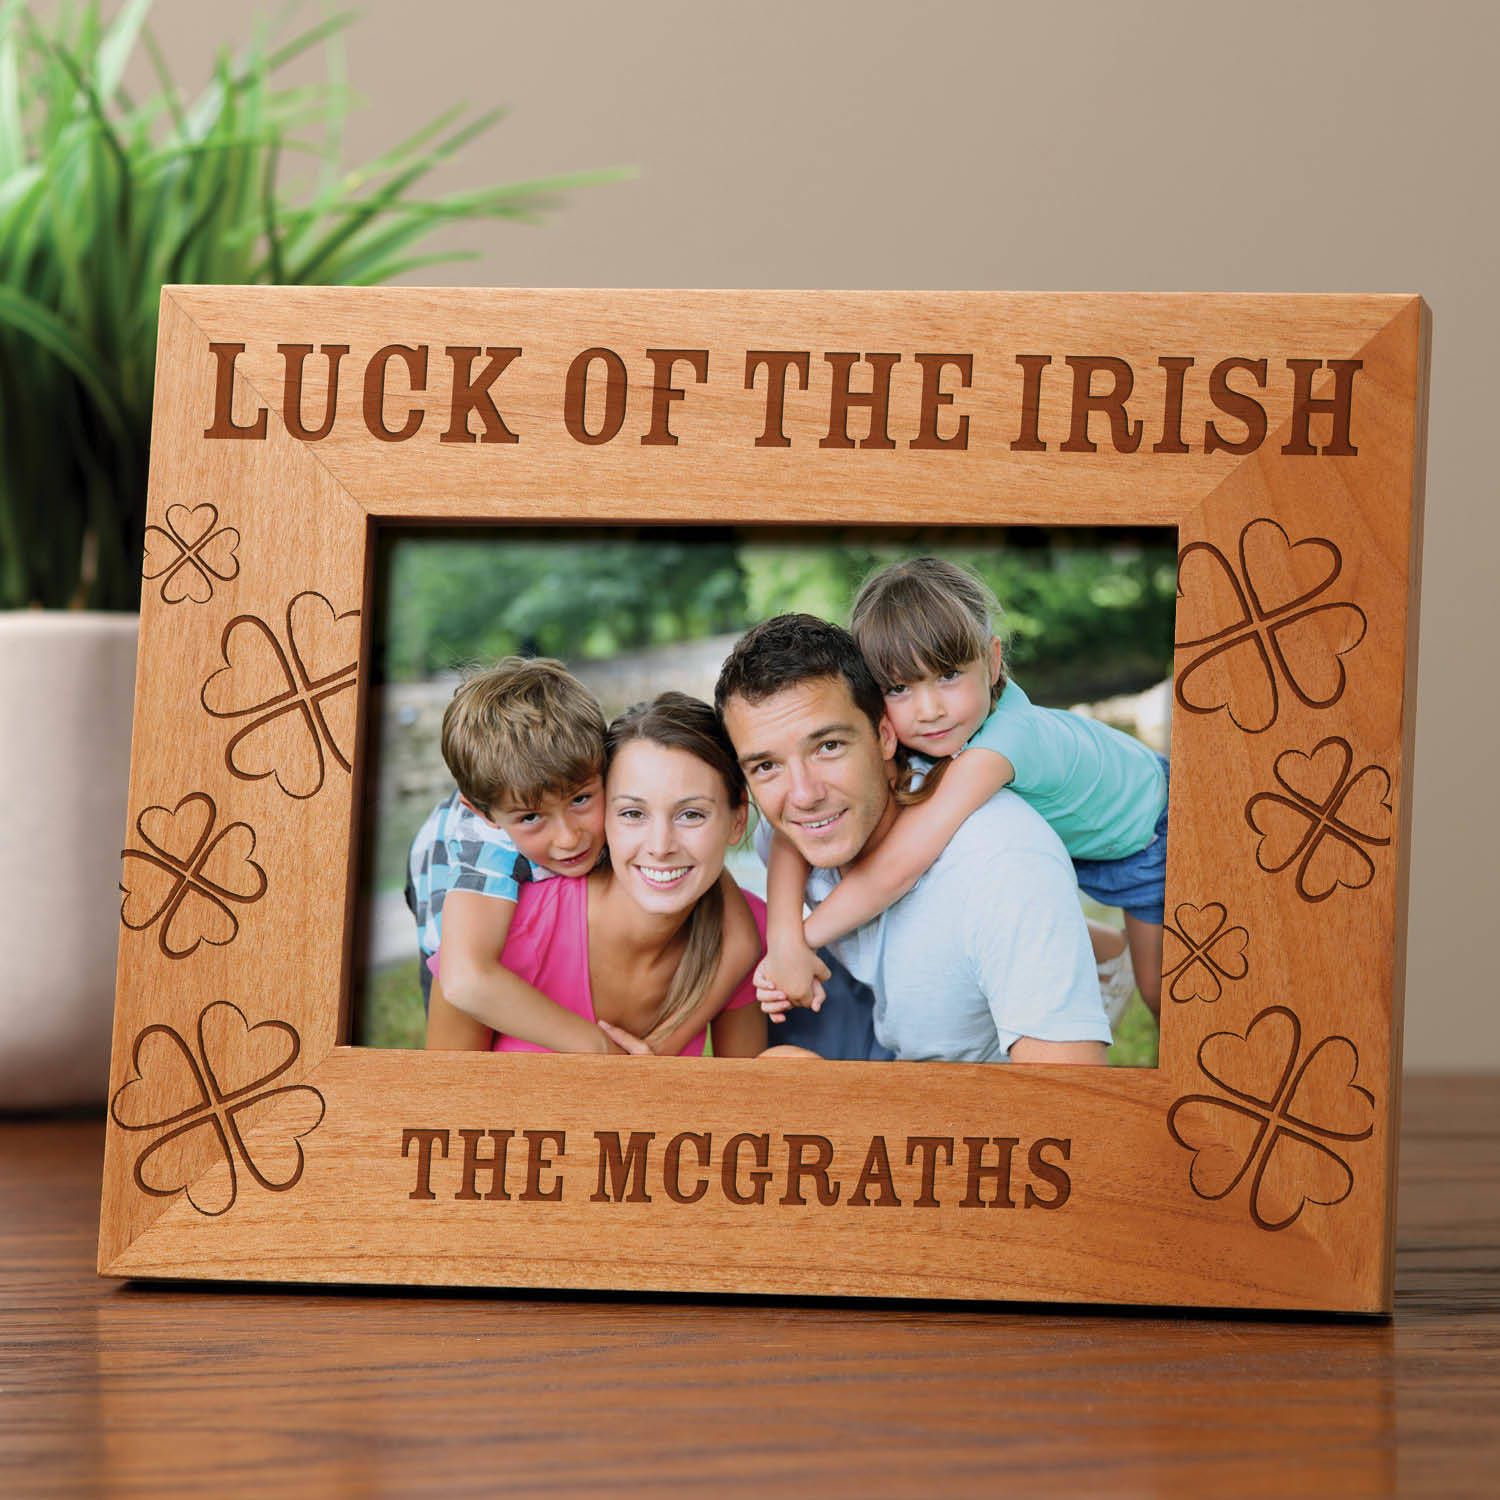 Luck Of The Irish Personalized Wood Frame